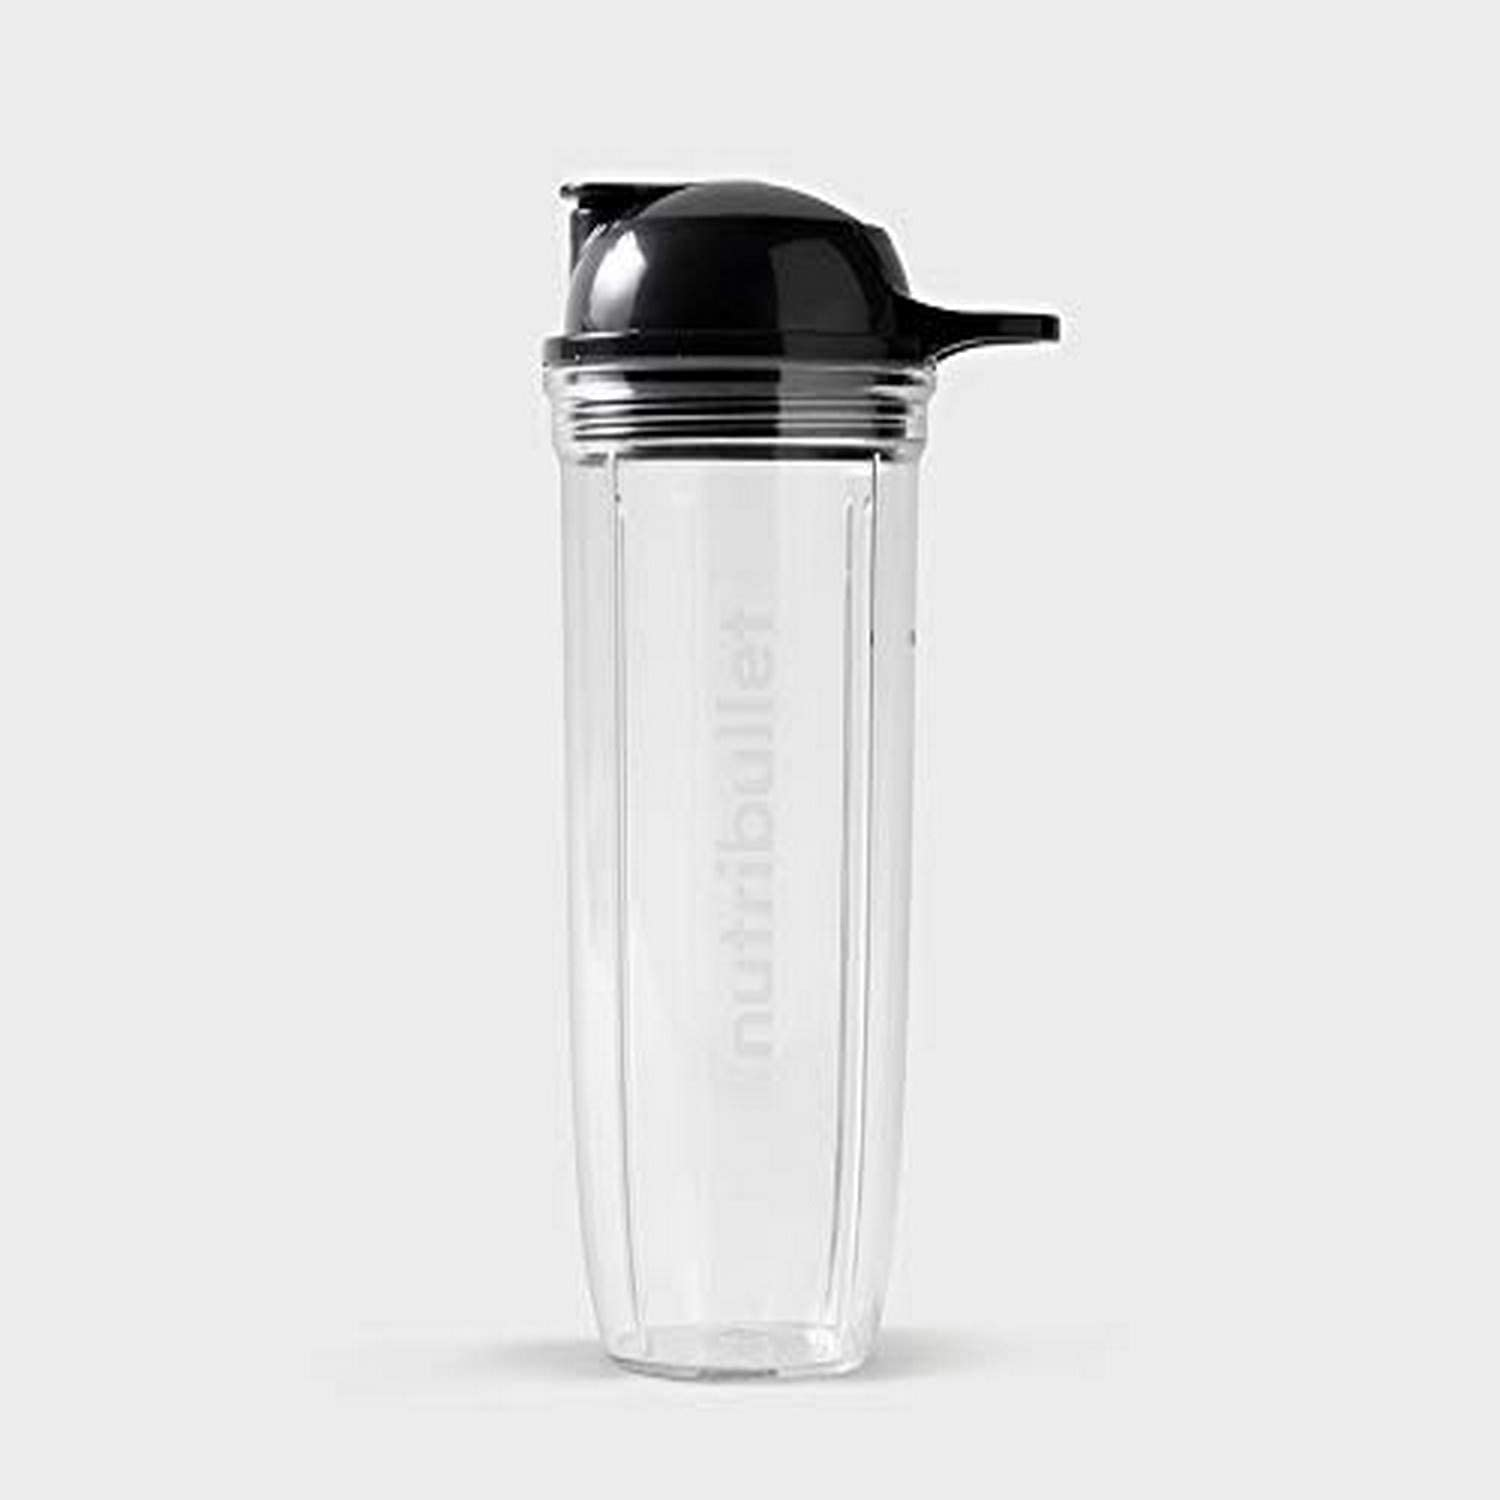 NutriBullet ANBC32 32 oz Cup with To-Go Lid, Clear/Black